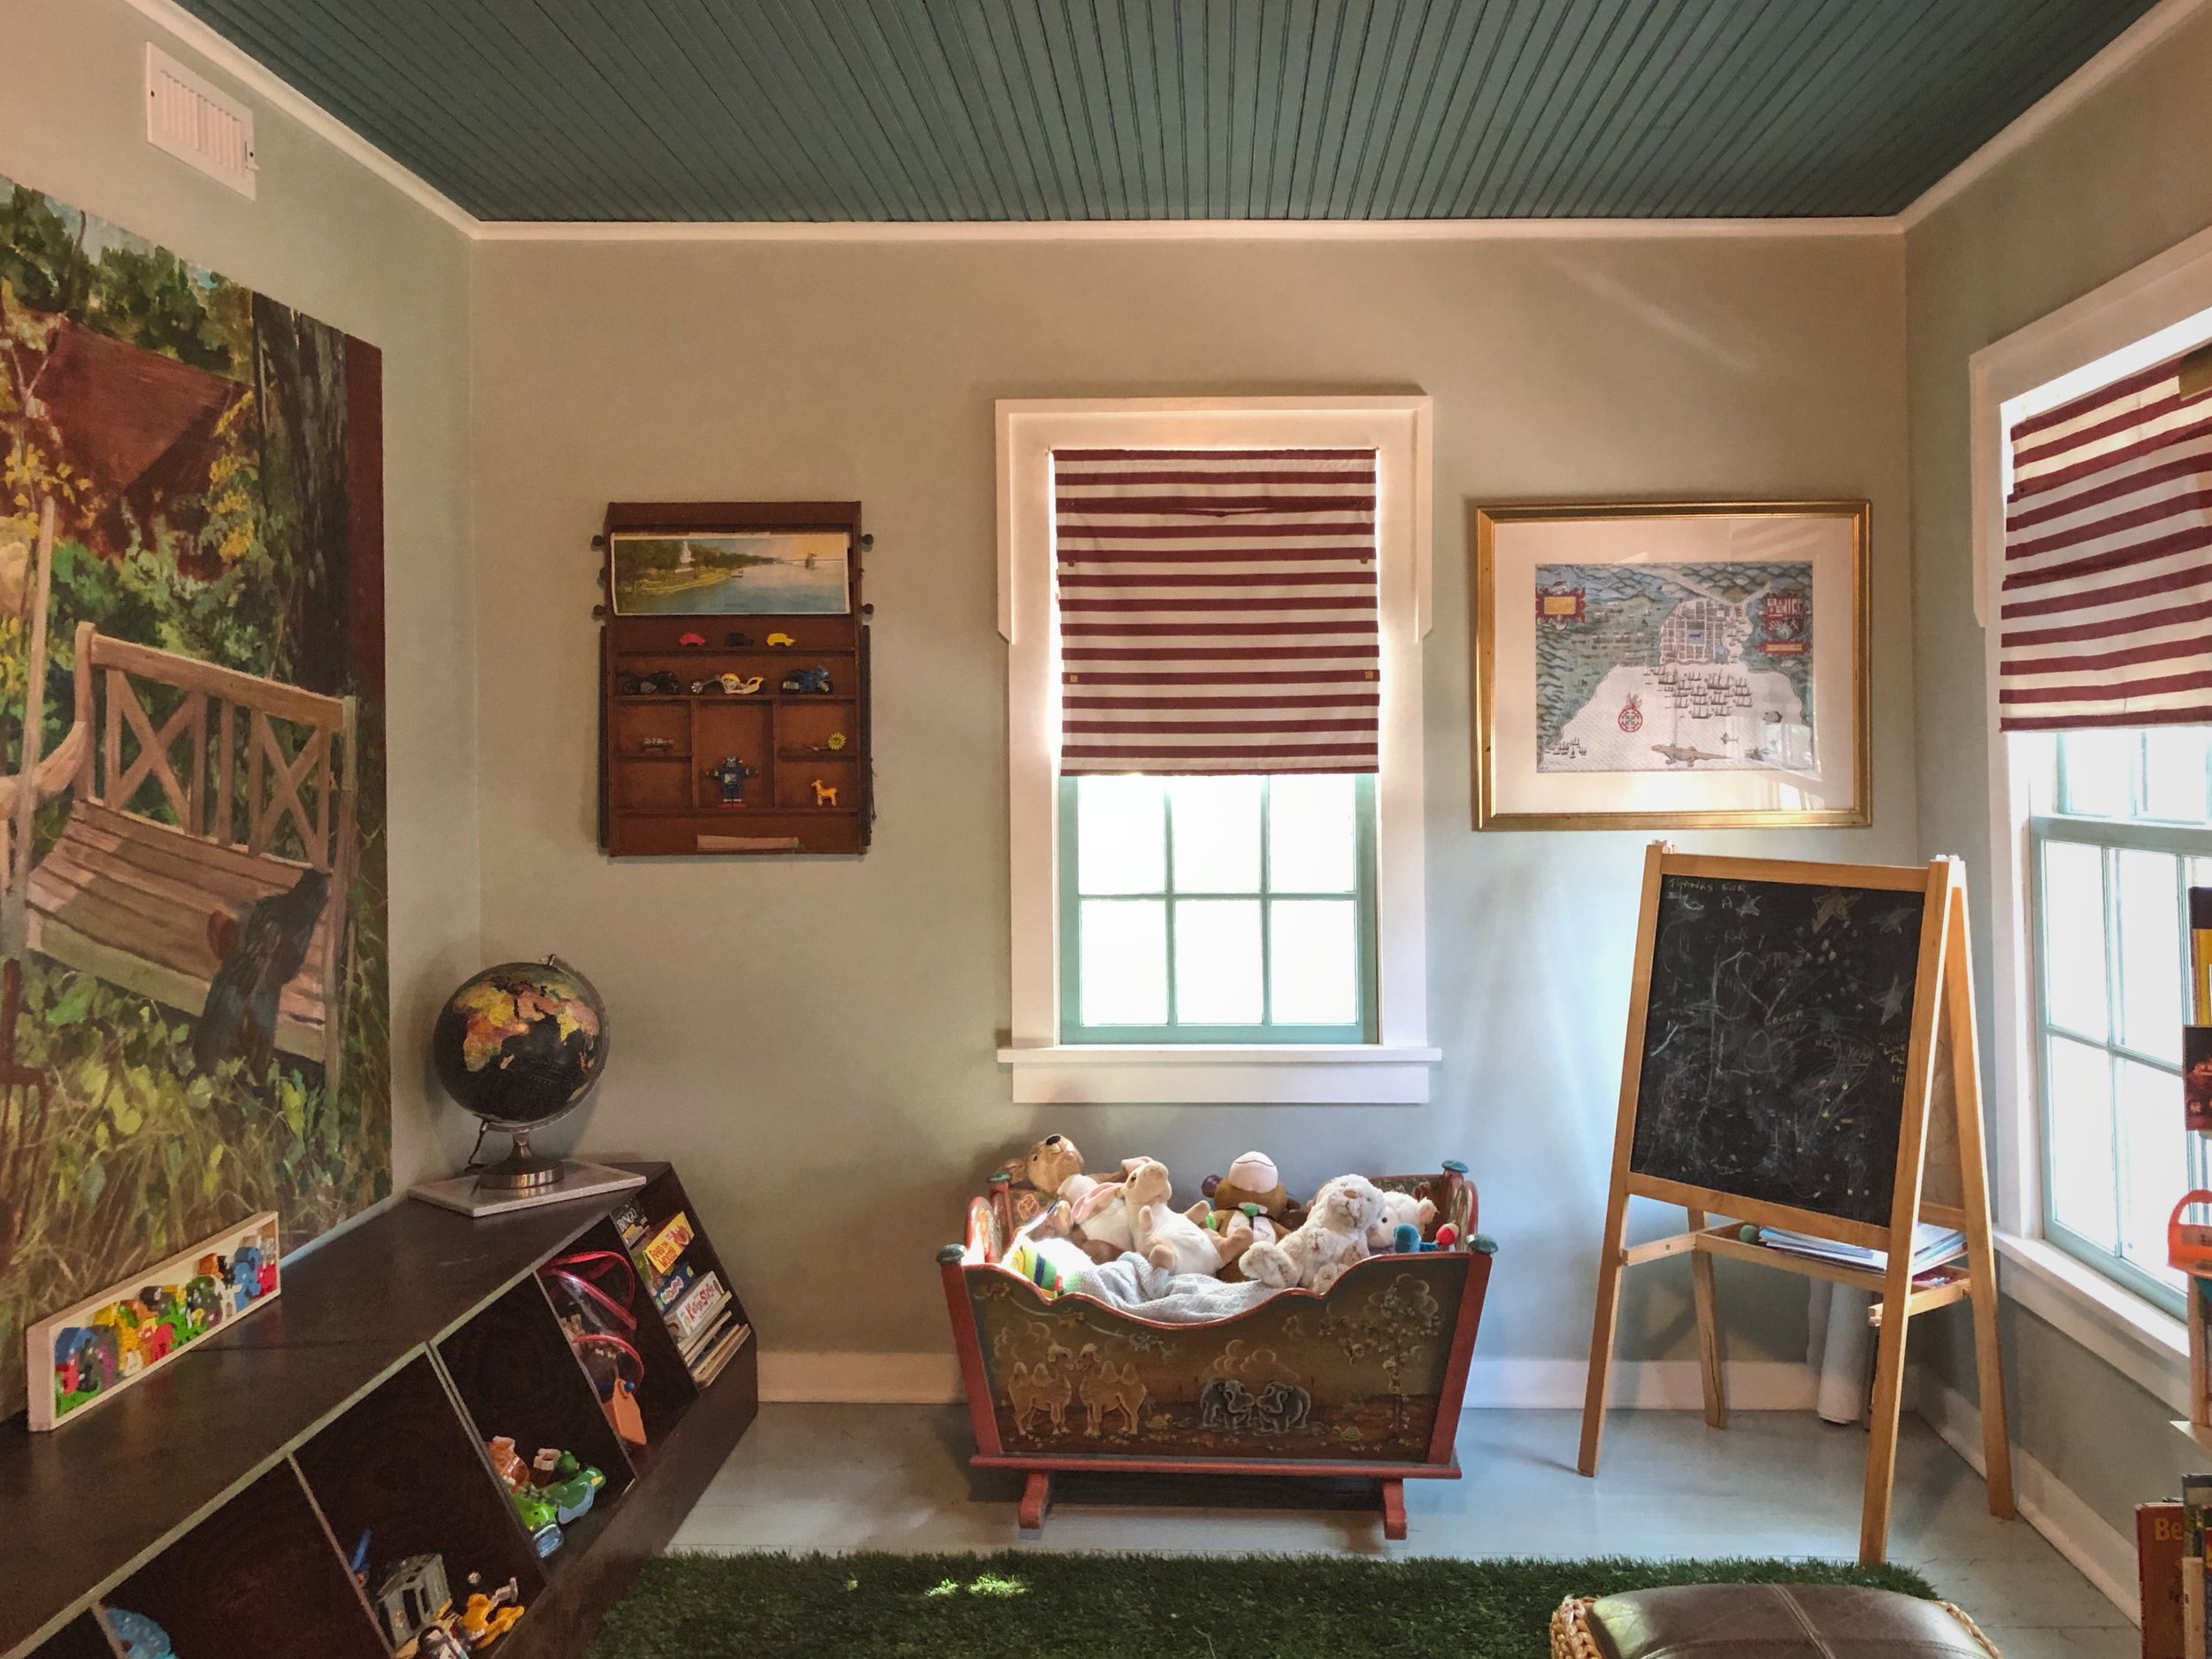 Garden painting with cubbies for storage underneath